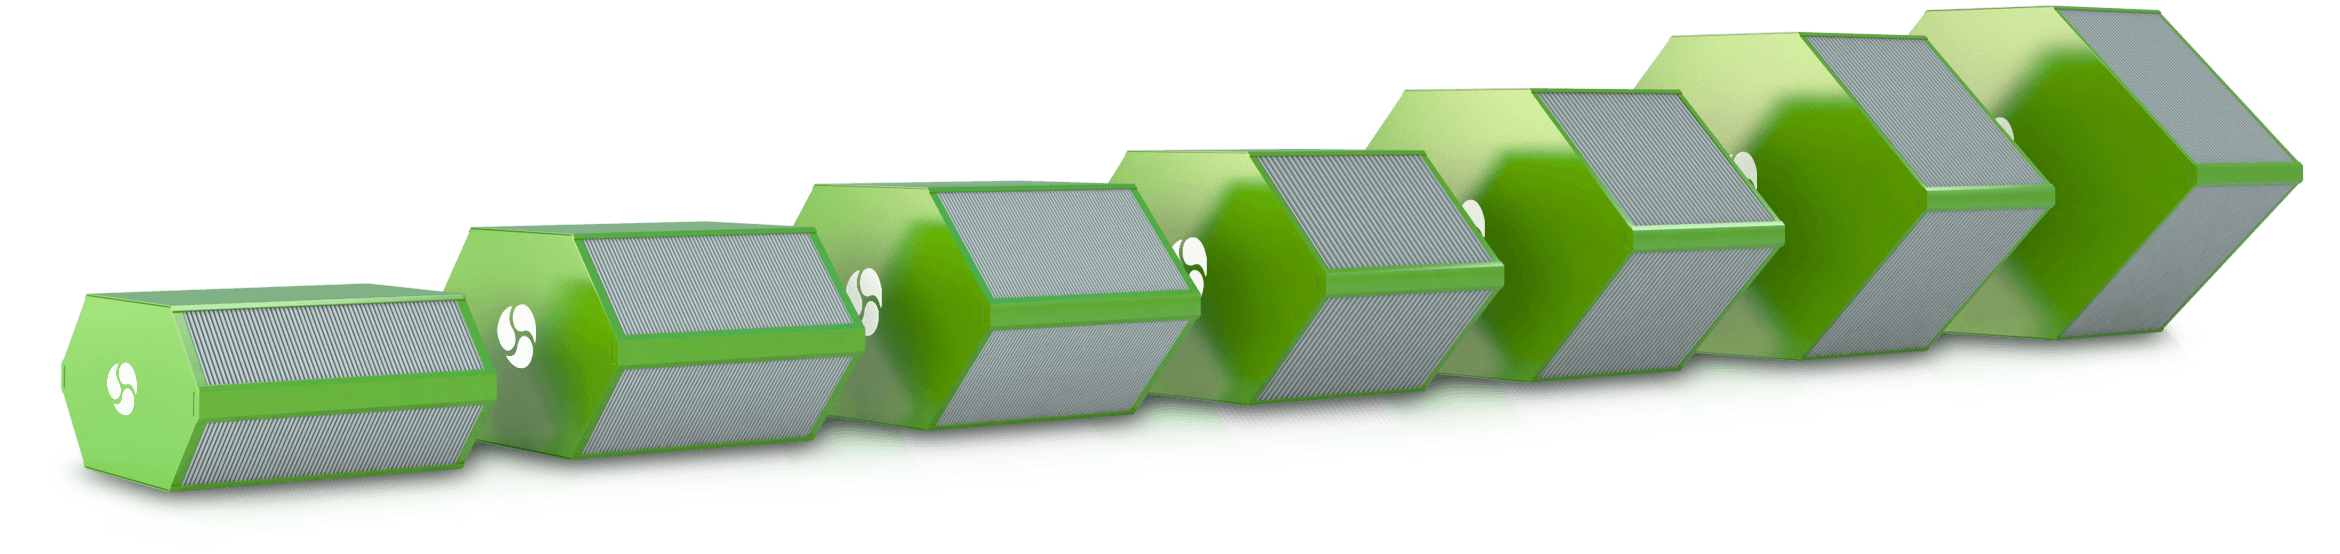 Counterflow heat exchanger – energy recovery with Eri Corporation S r l